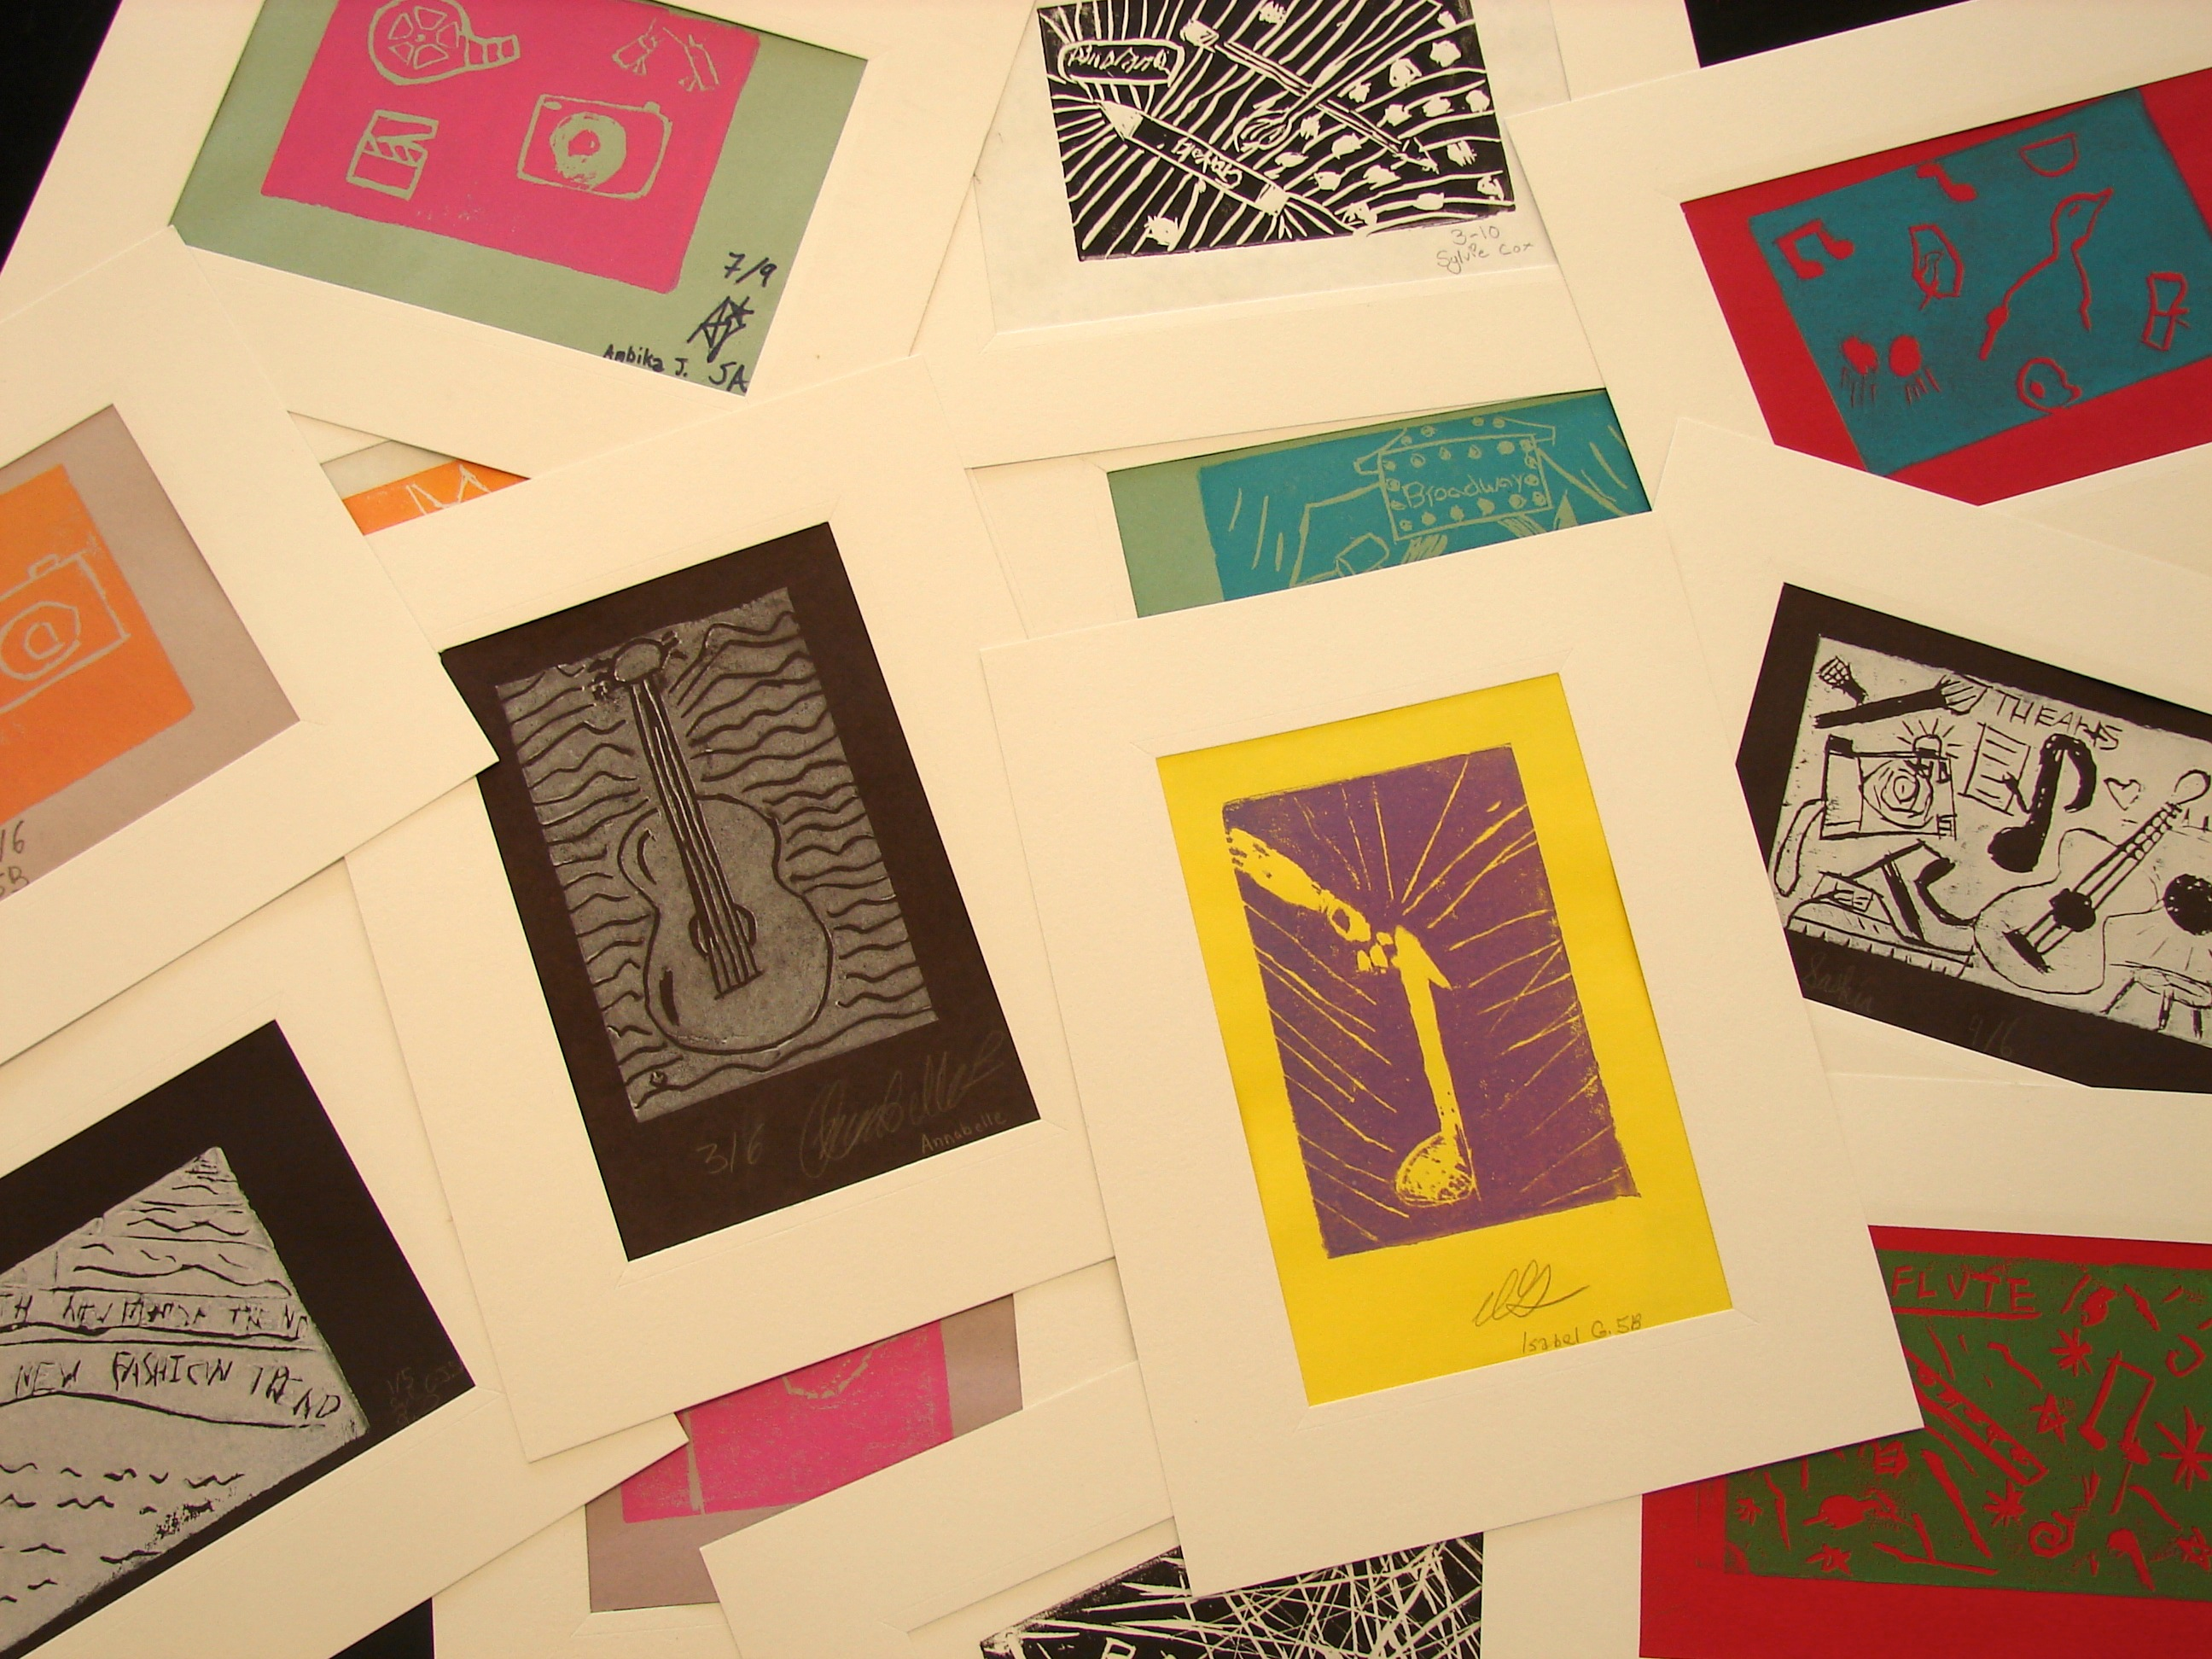 Prints by Pedro Mena's 5th grade art class